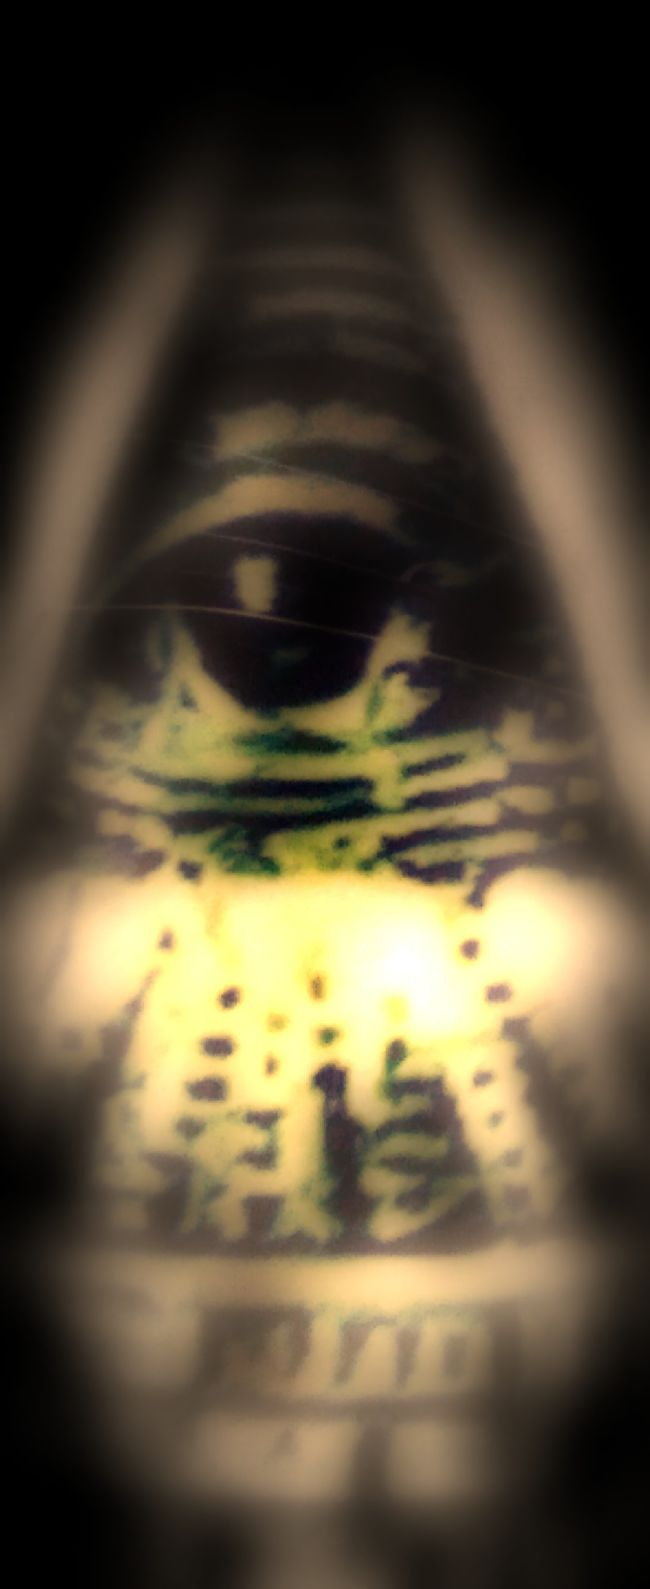 Psychic Medium Occult All Seeing Eye Hierophant Gnosis  Surrealism Esoteric Creative Light And Shadow Photography EyeEm Best Edits EyeEm Best Shots The Impurist Light And Shadow Check This Out Taking Photos Surrealist Art Illusion Art